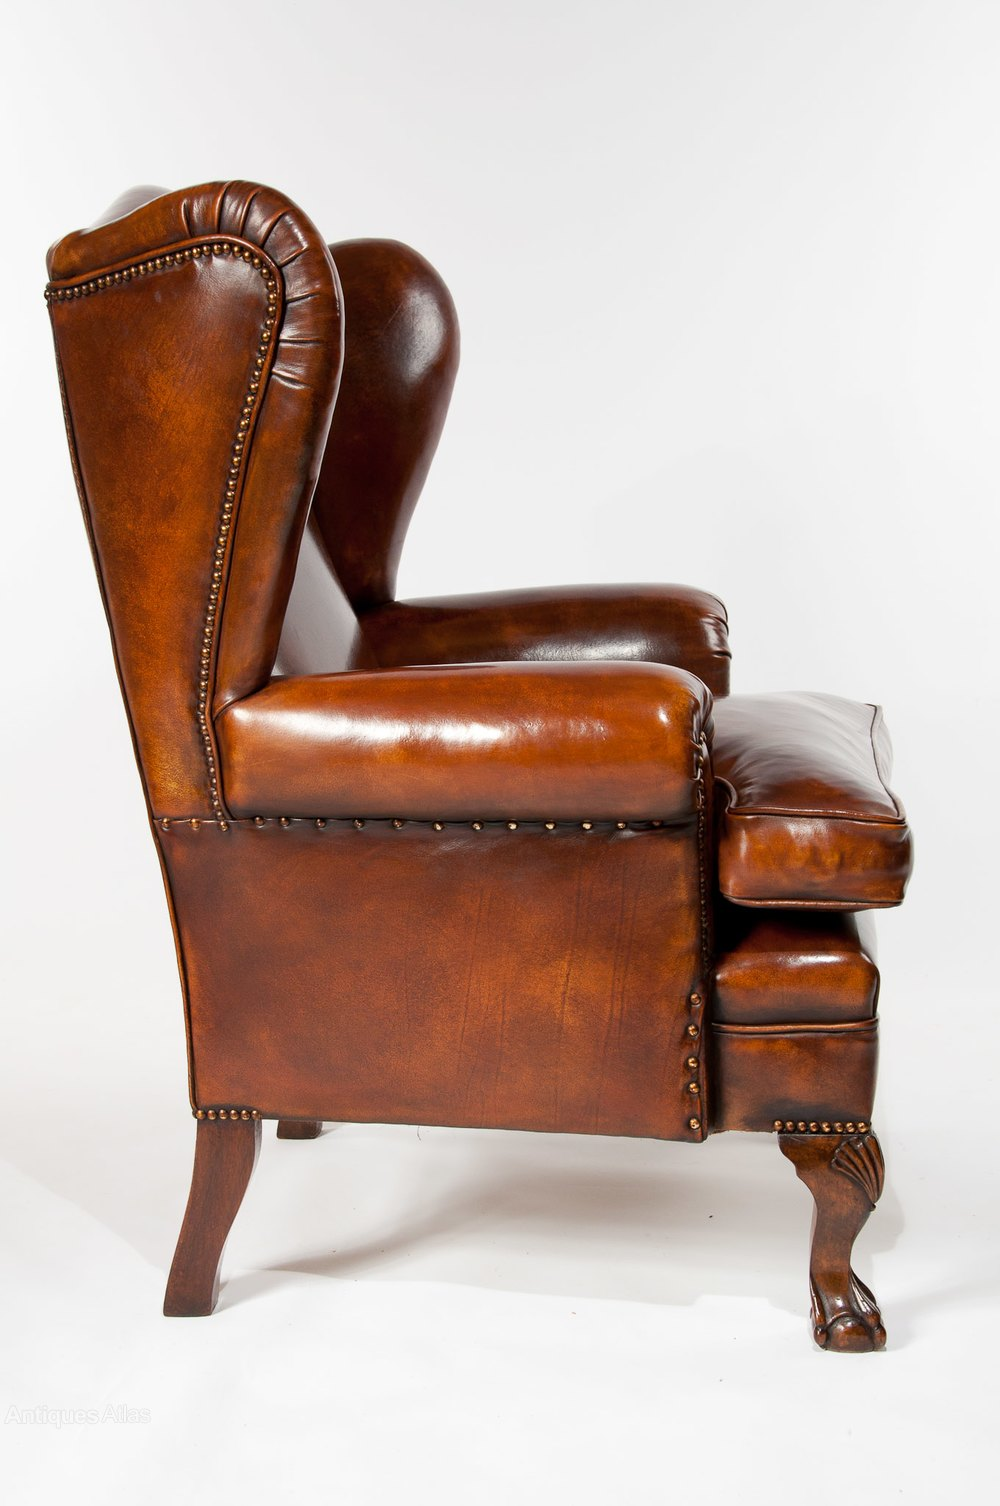 Pair Of Walnut Leather Wing Chairs 19thC - Antiques Atlas